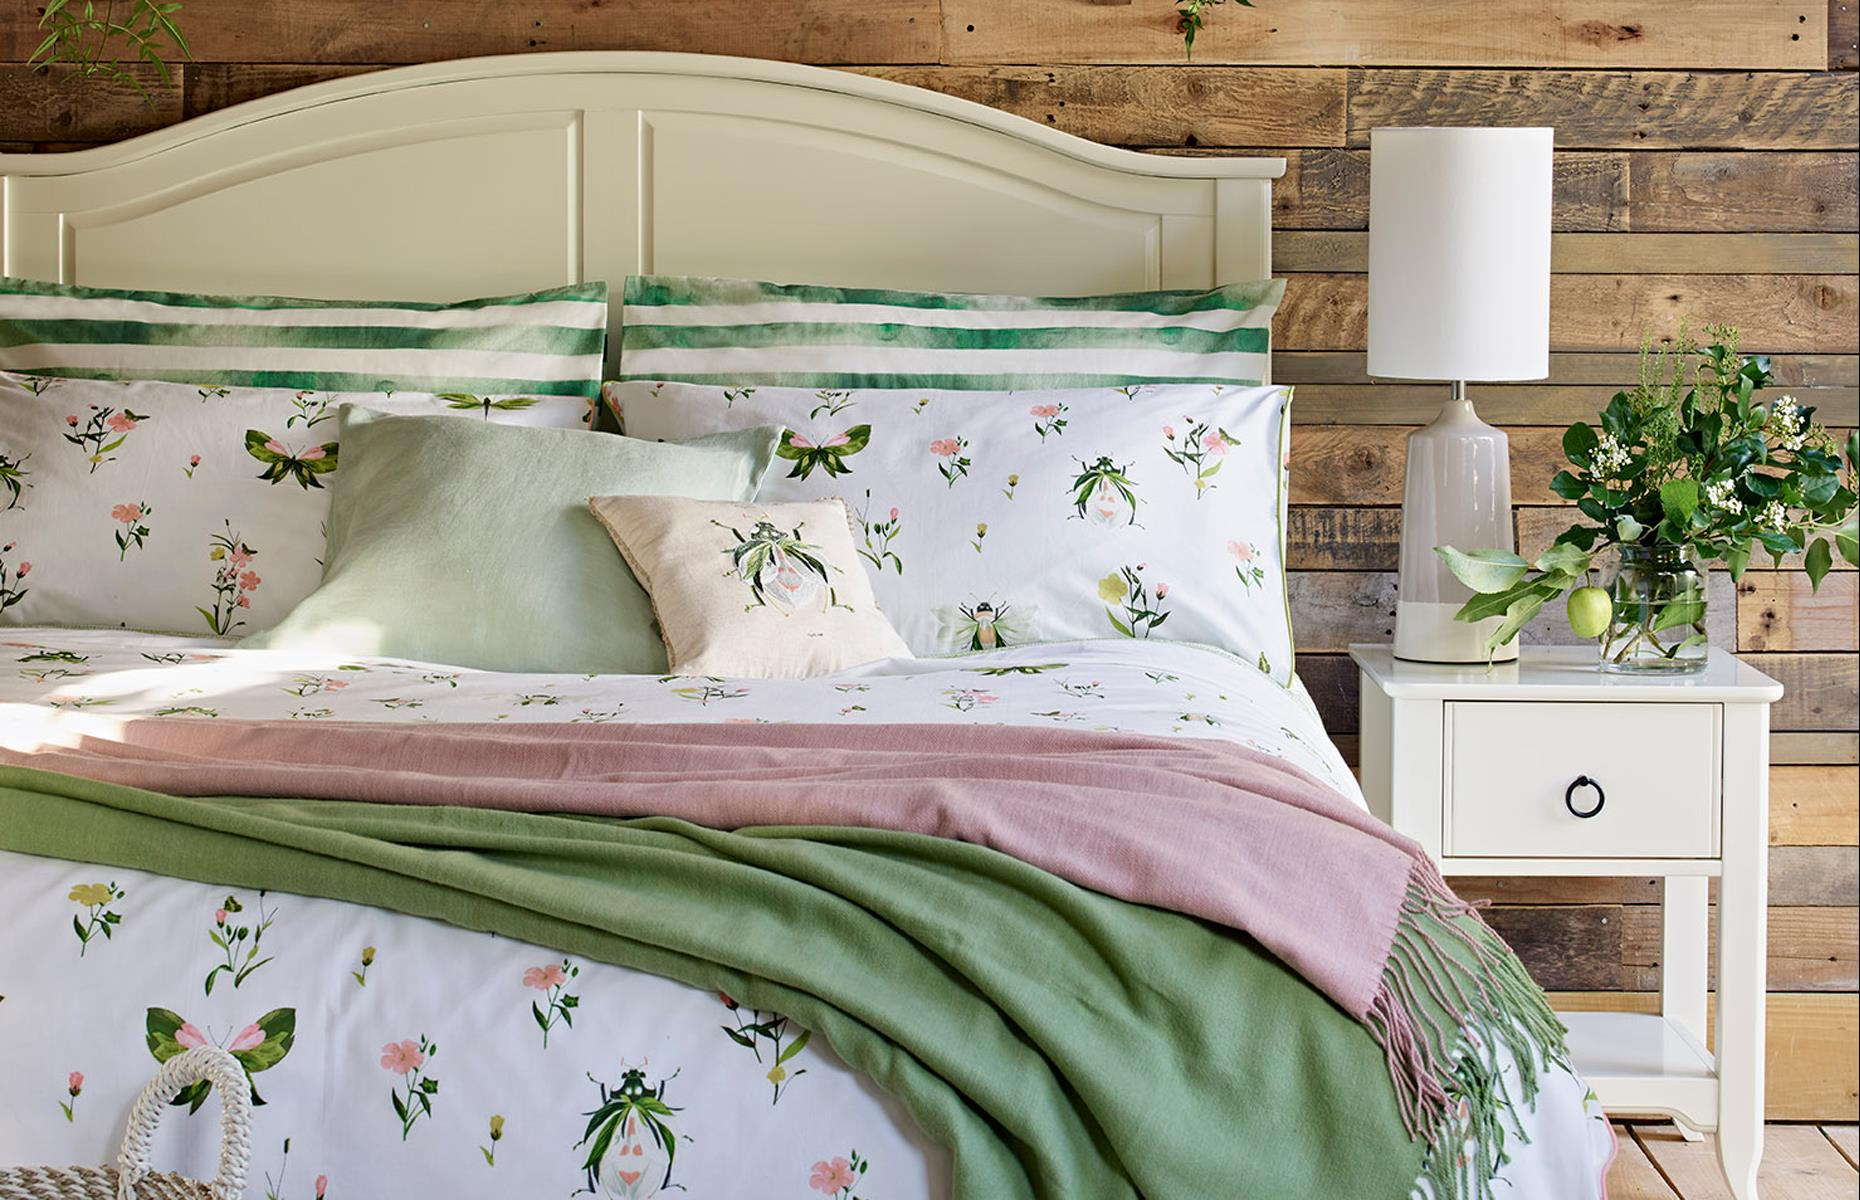 Green And Pink Bedroom With Summer Insect Bedlinen